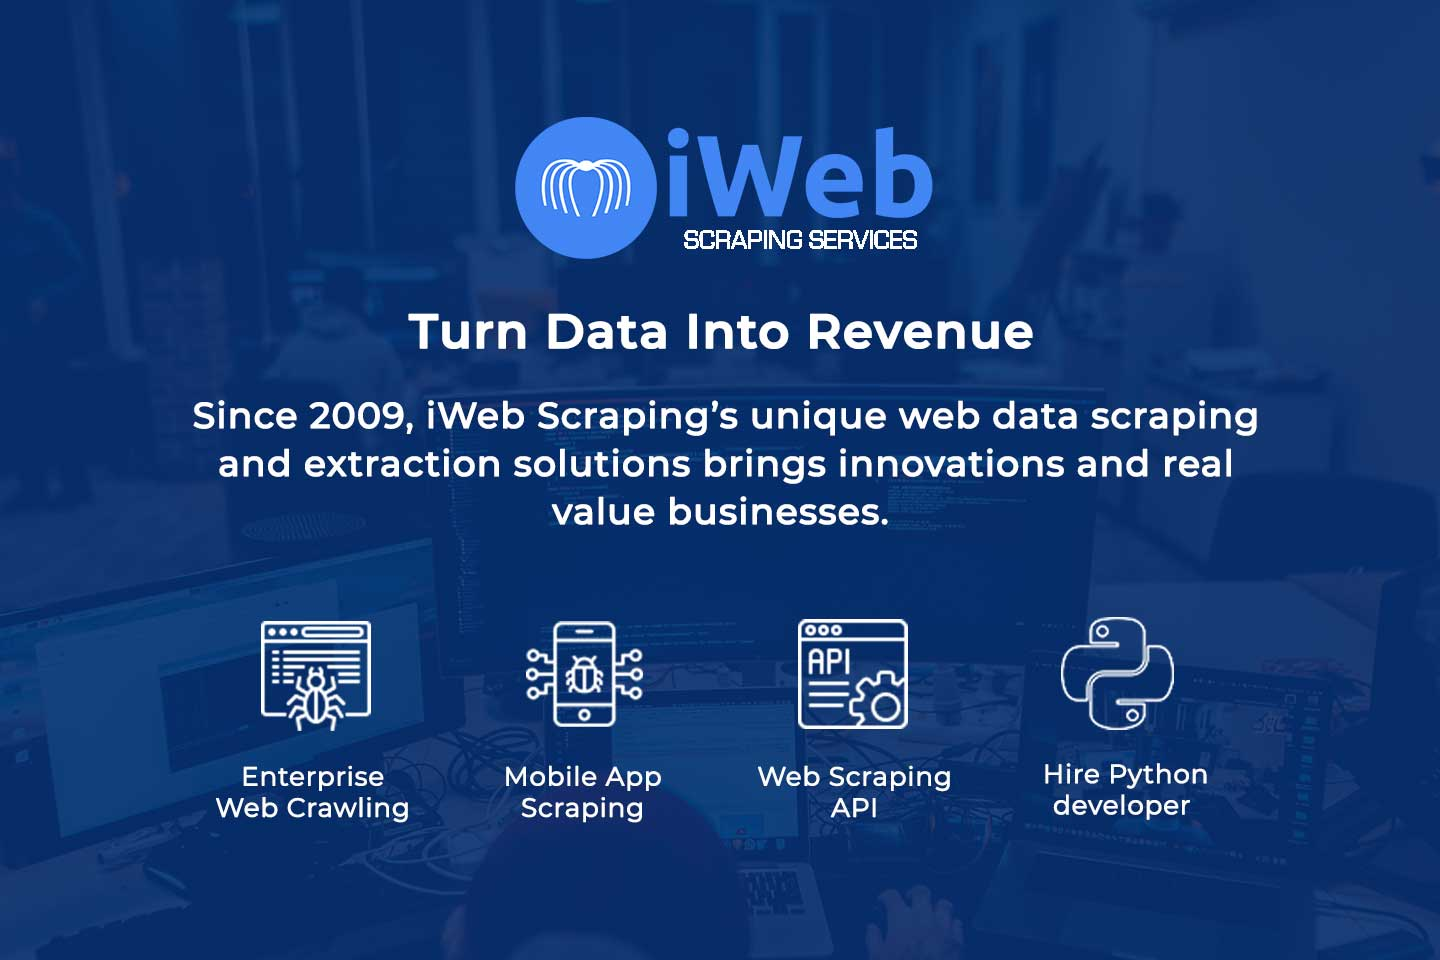 iWeb Scraping Services